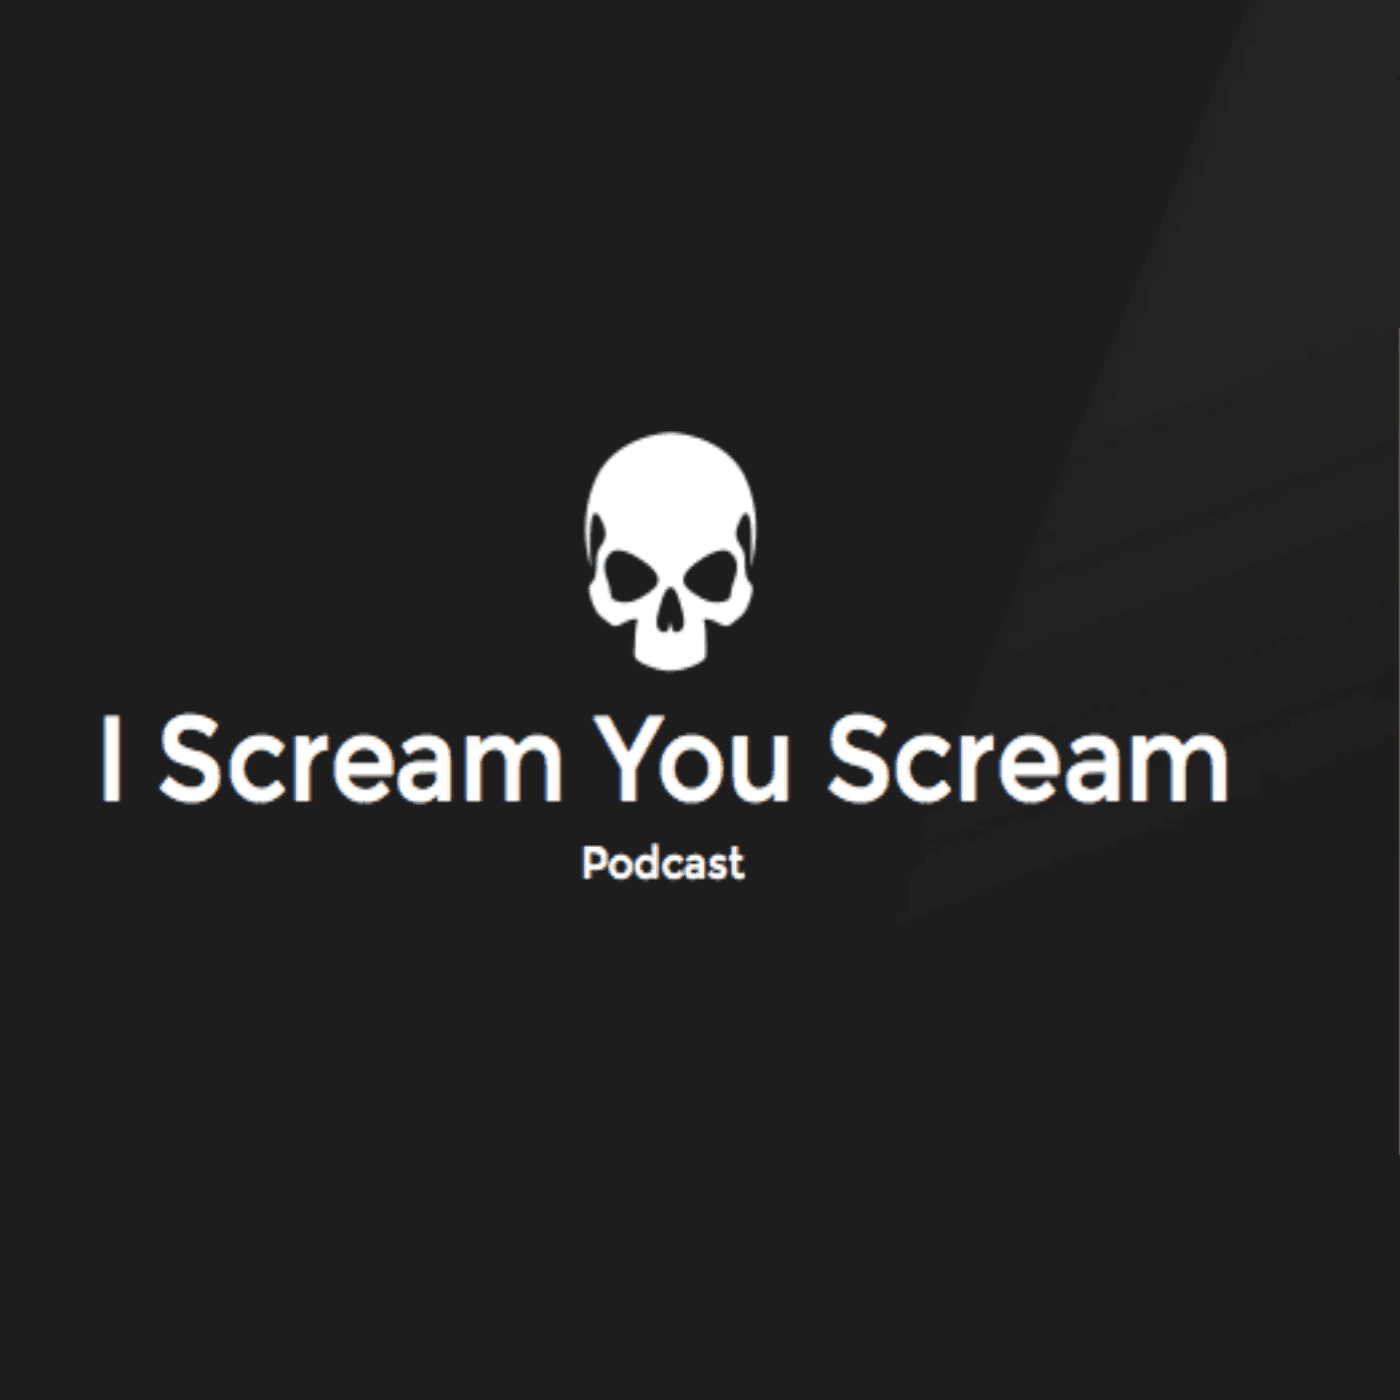 GAMbIT's 'I Scream You Scream' Horror Podcast